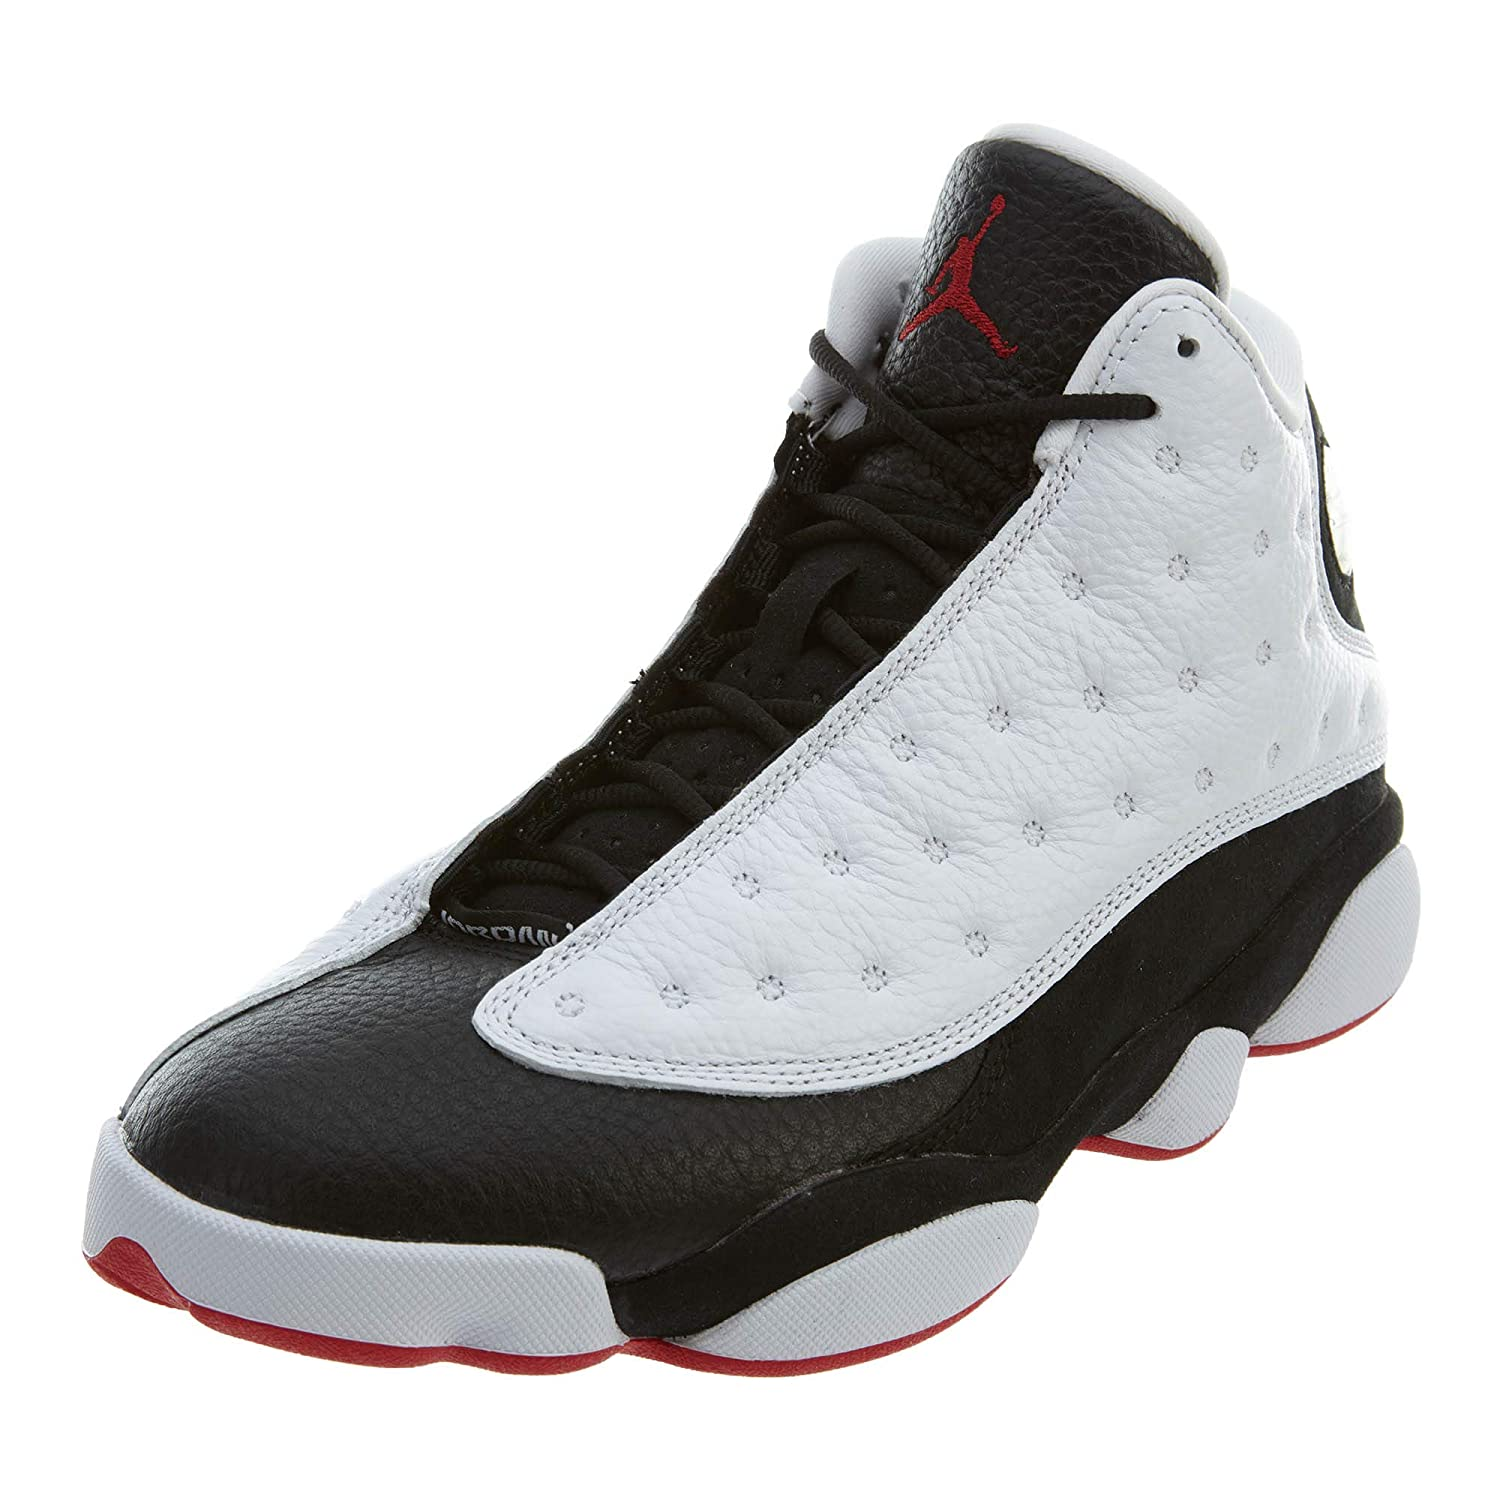 buy popular 6b2ee 86664 NIKE Air Jordan 13 Retro He Got Game Men's Shoes White/True red/Black  414571-104 (10.5 D(M) US)